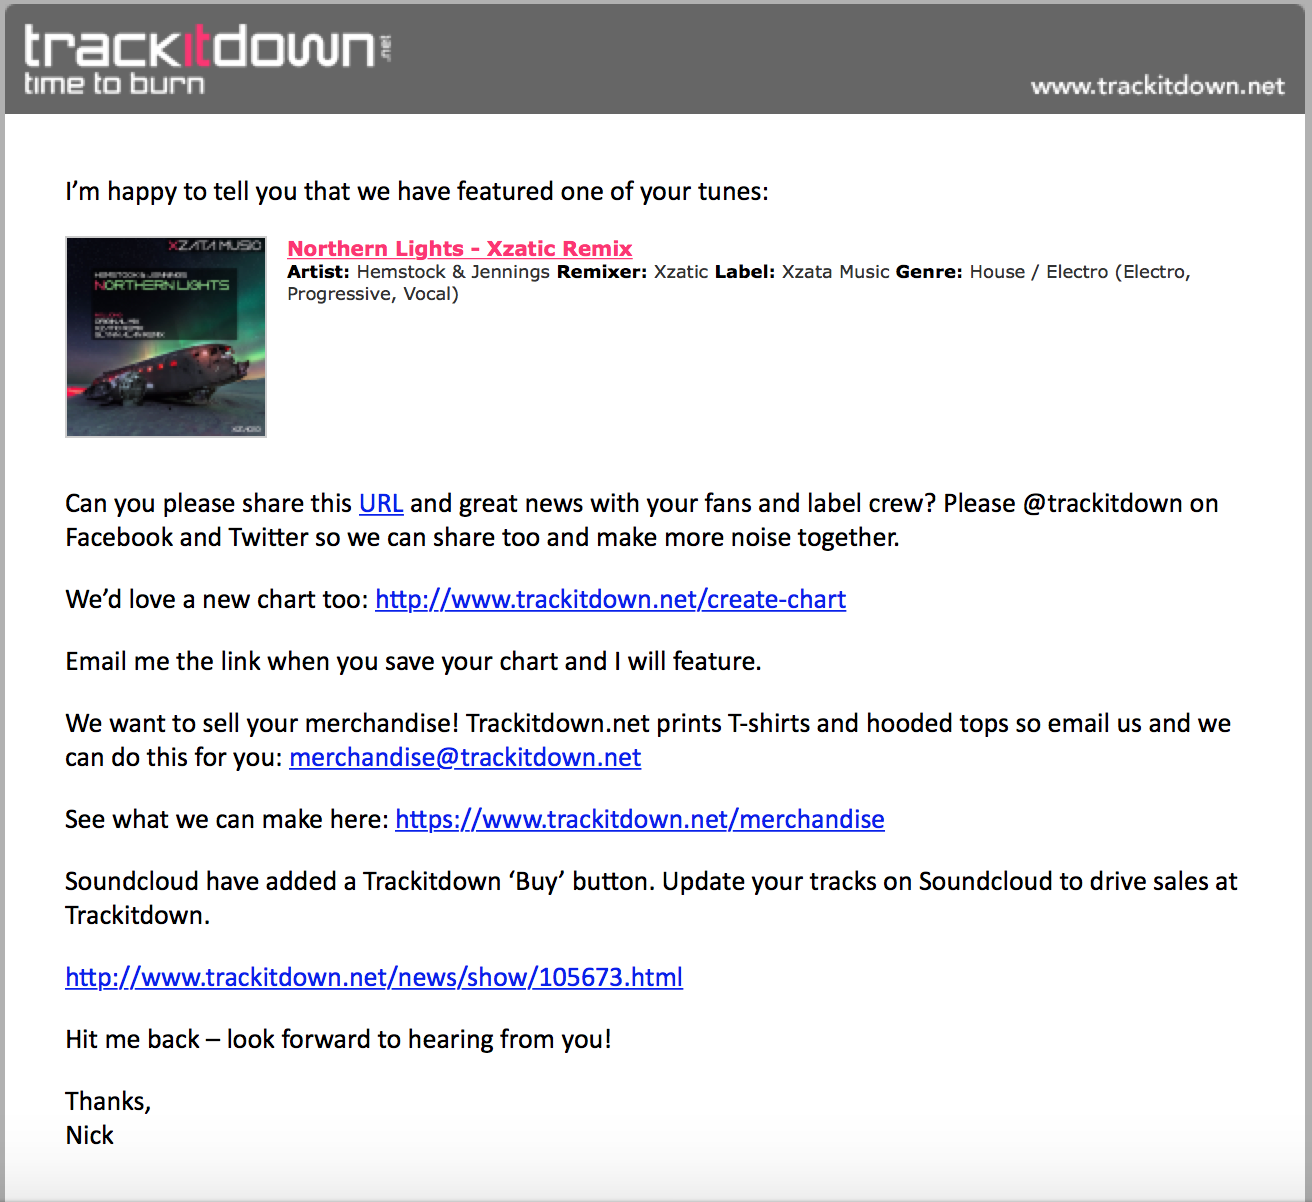 Northern Lights Xzatic Remix Featured at Trackitdown!